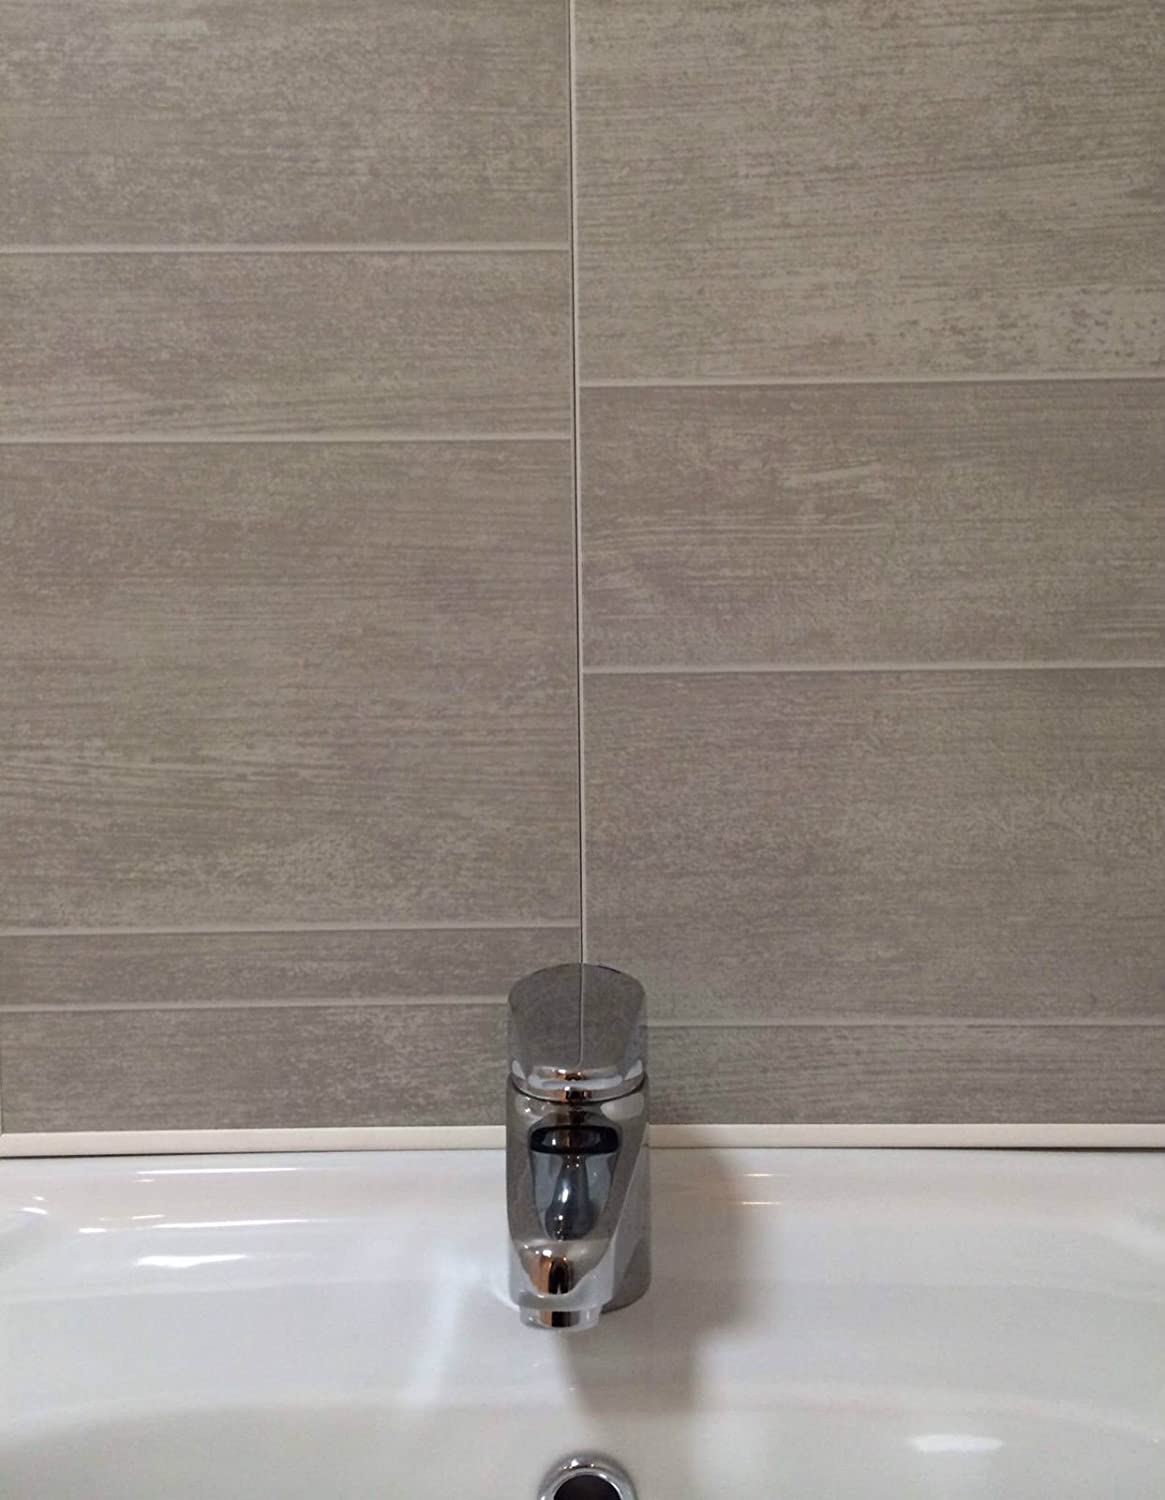 Swish Marbrex Moonstone Tile Effect Sample Wall Panels Bathroom PVC Wet Cladding